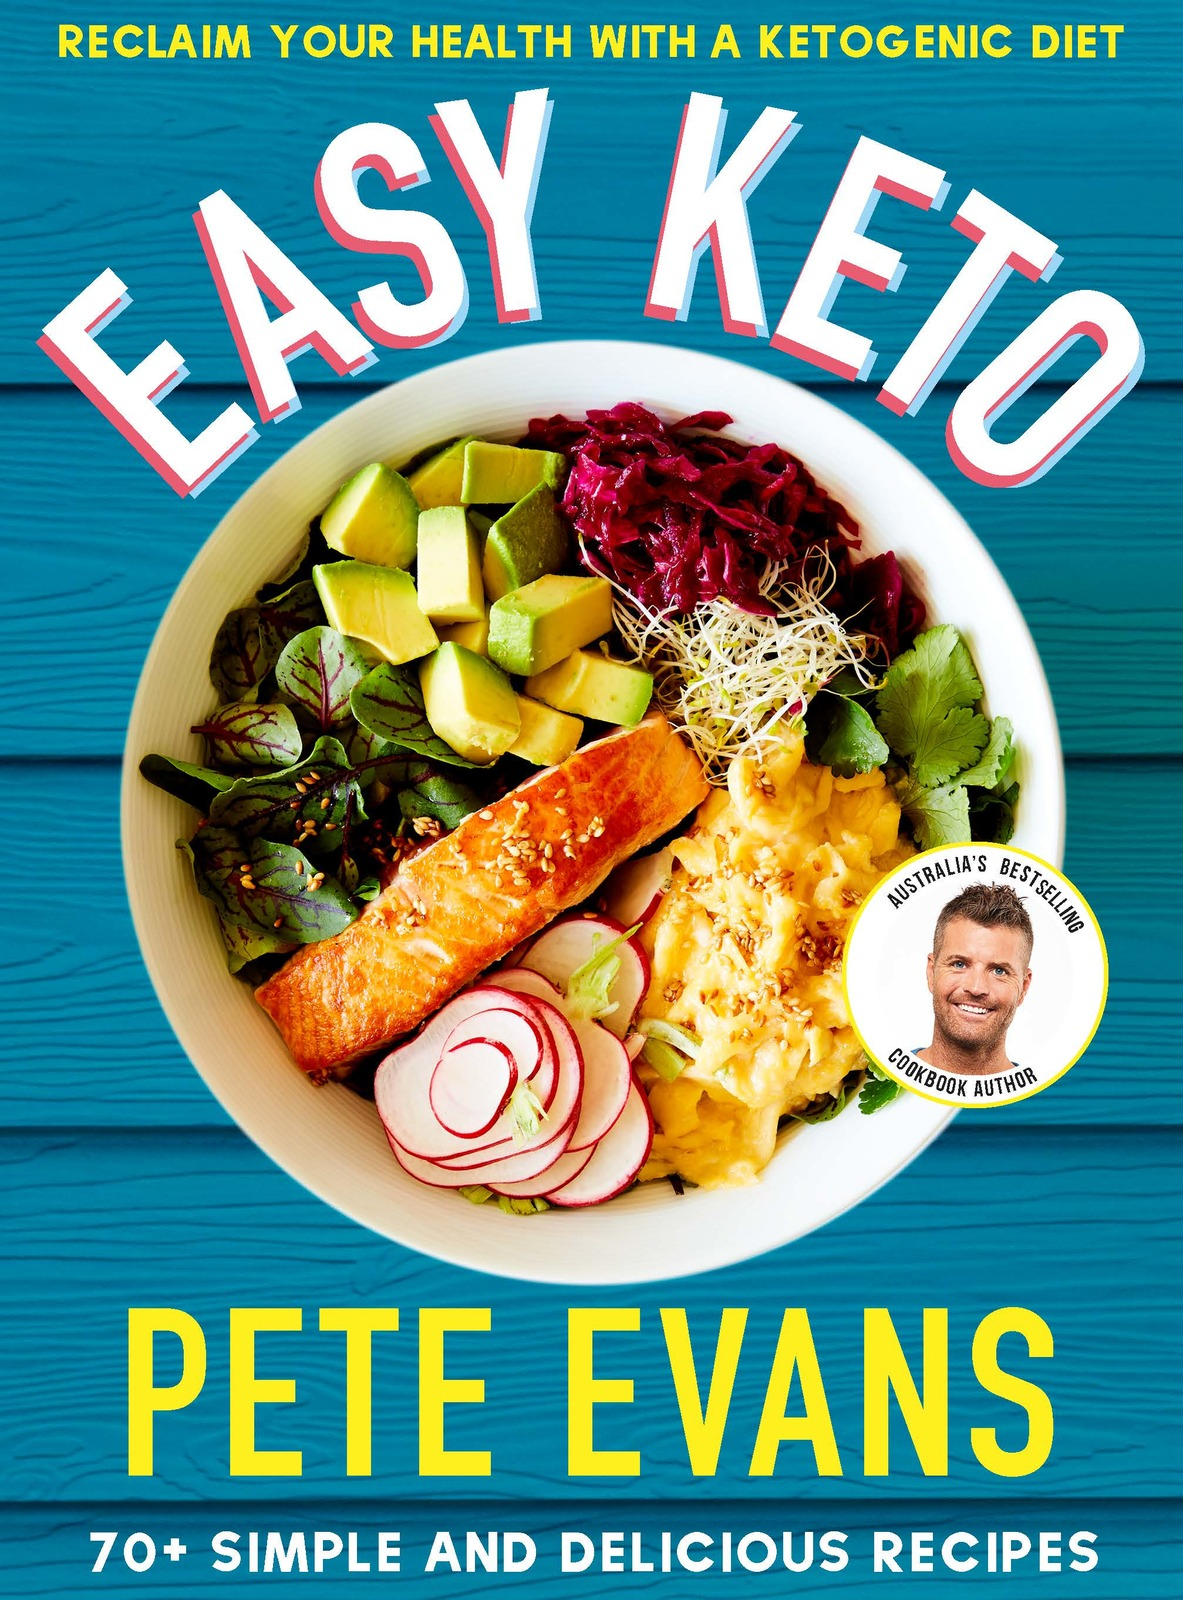 Easy Keto by Pete Evans image